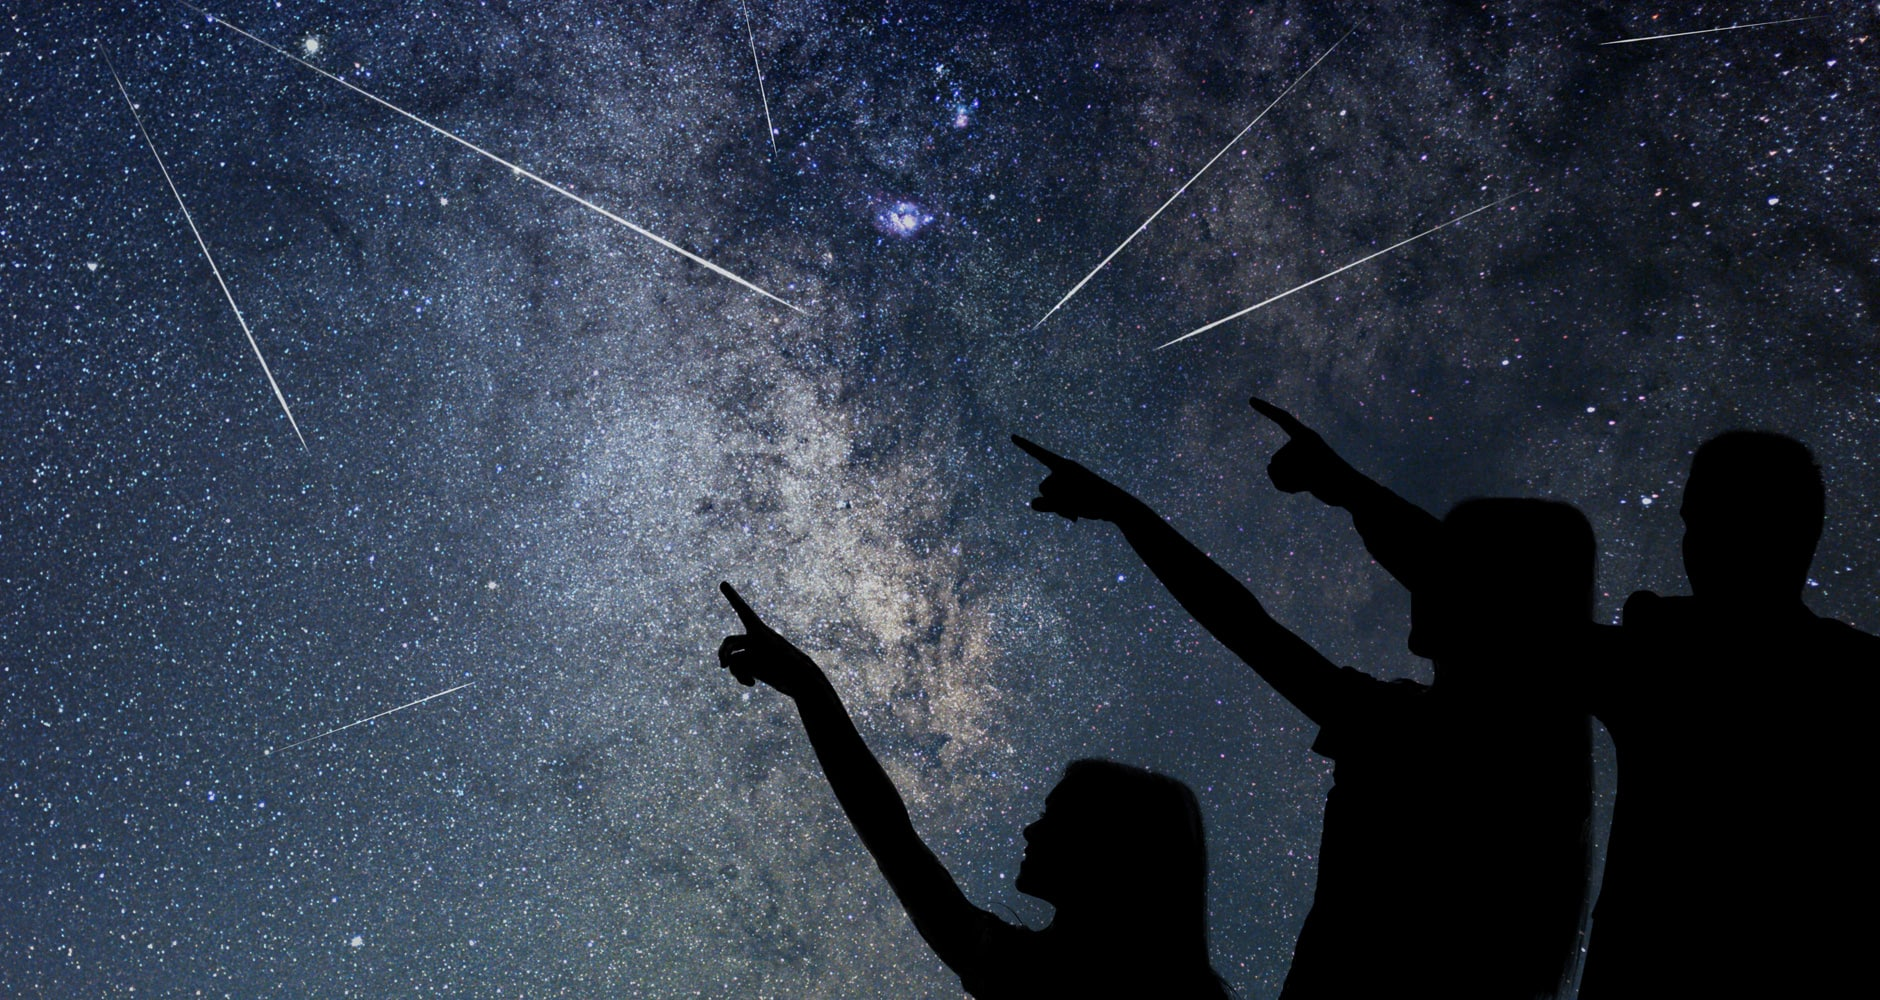 April 22 and 23 2021 Lyrids Meteor Shower